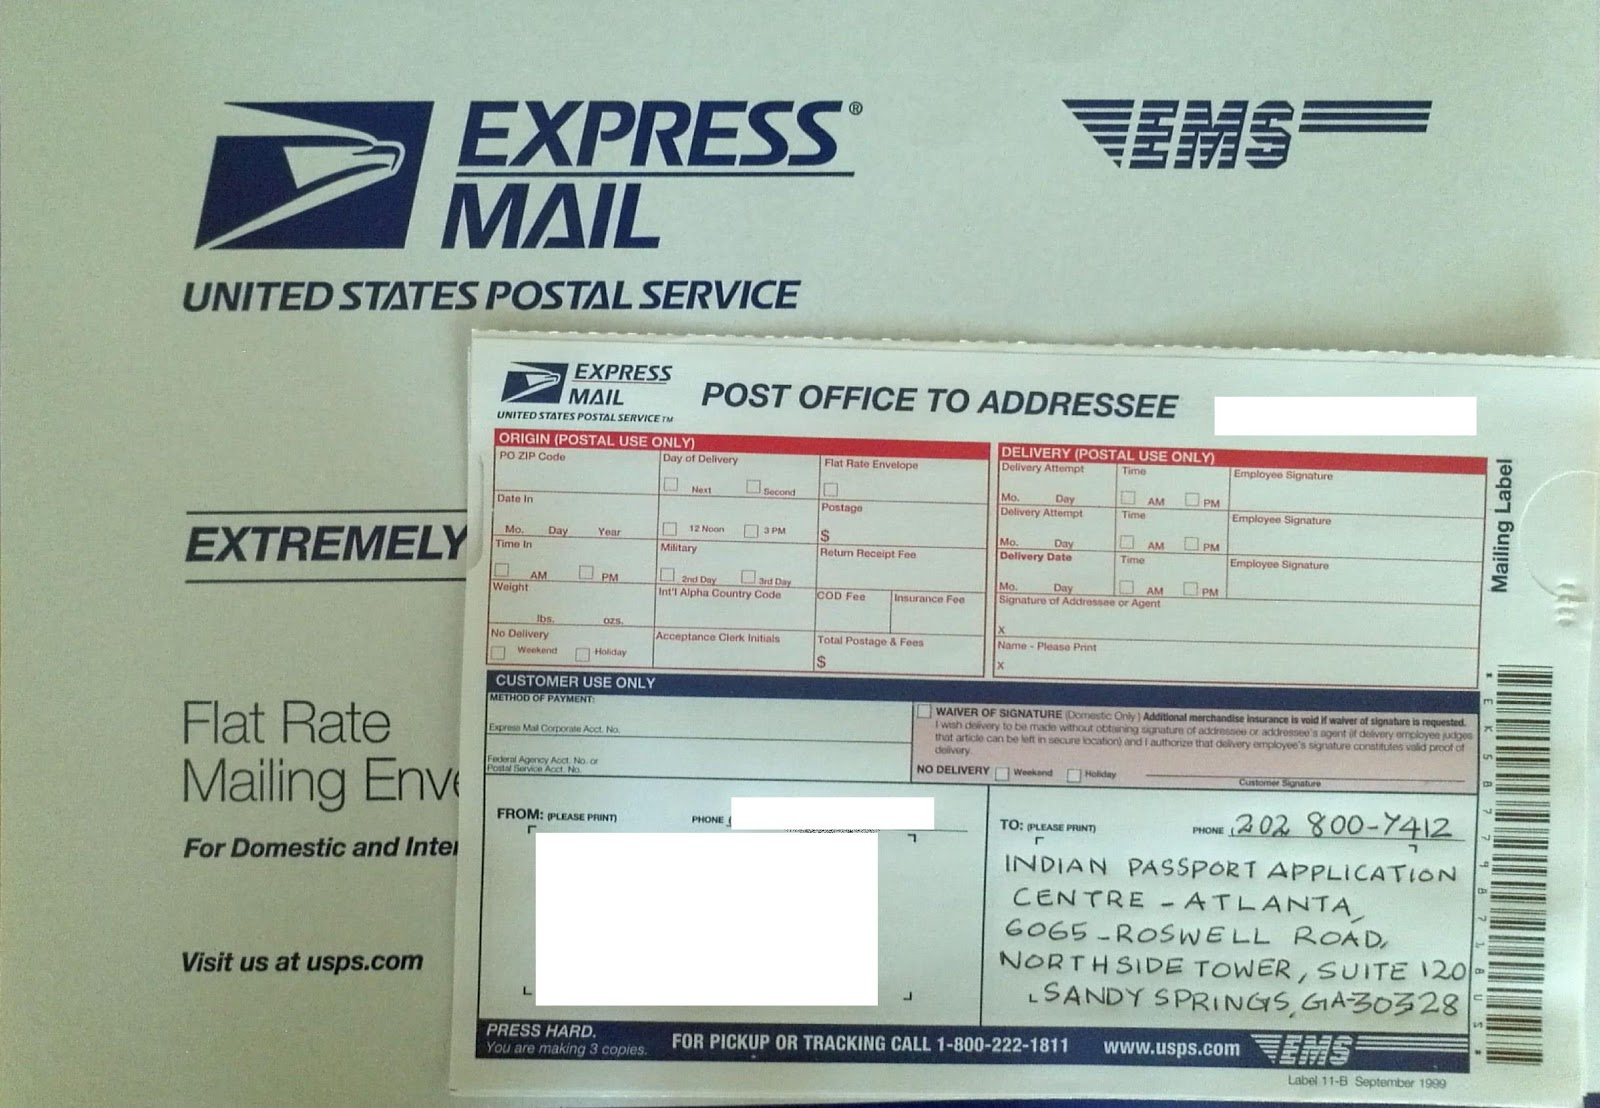 Sudeep s BLOG How To Renew An Indian Passport In USA